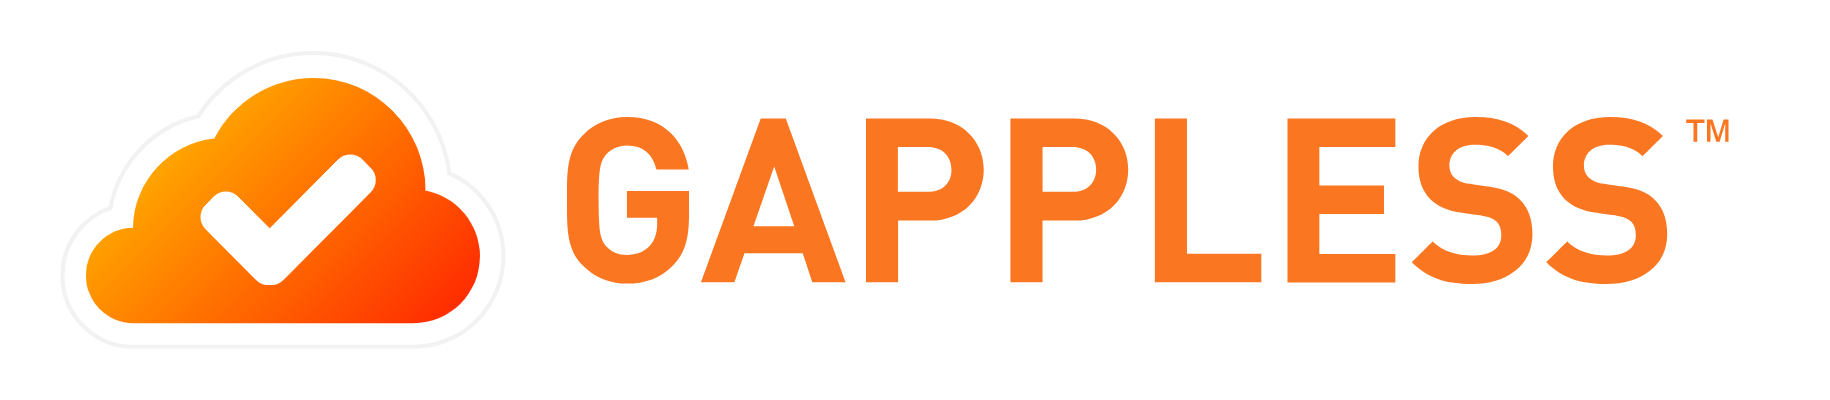 gappless logo